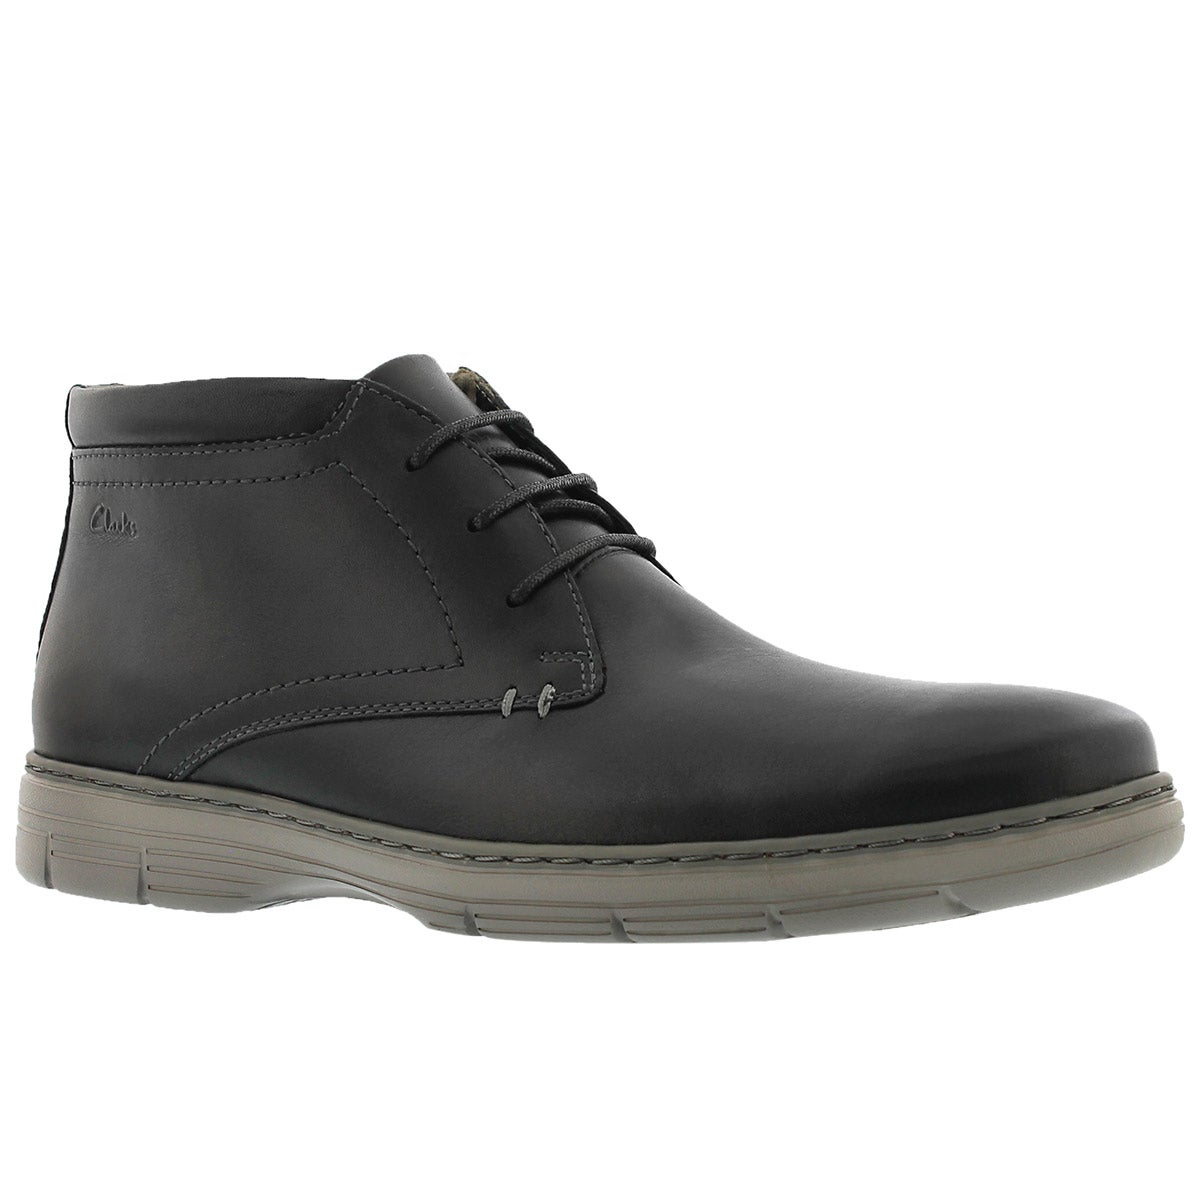 Mns Watts Mid black chukka boot